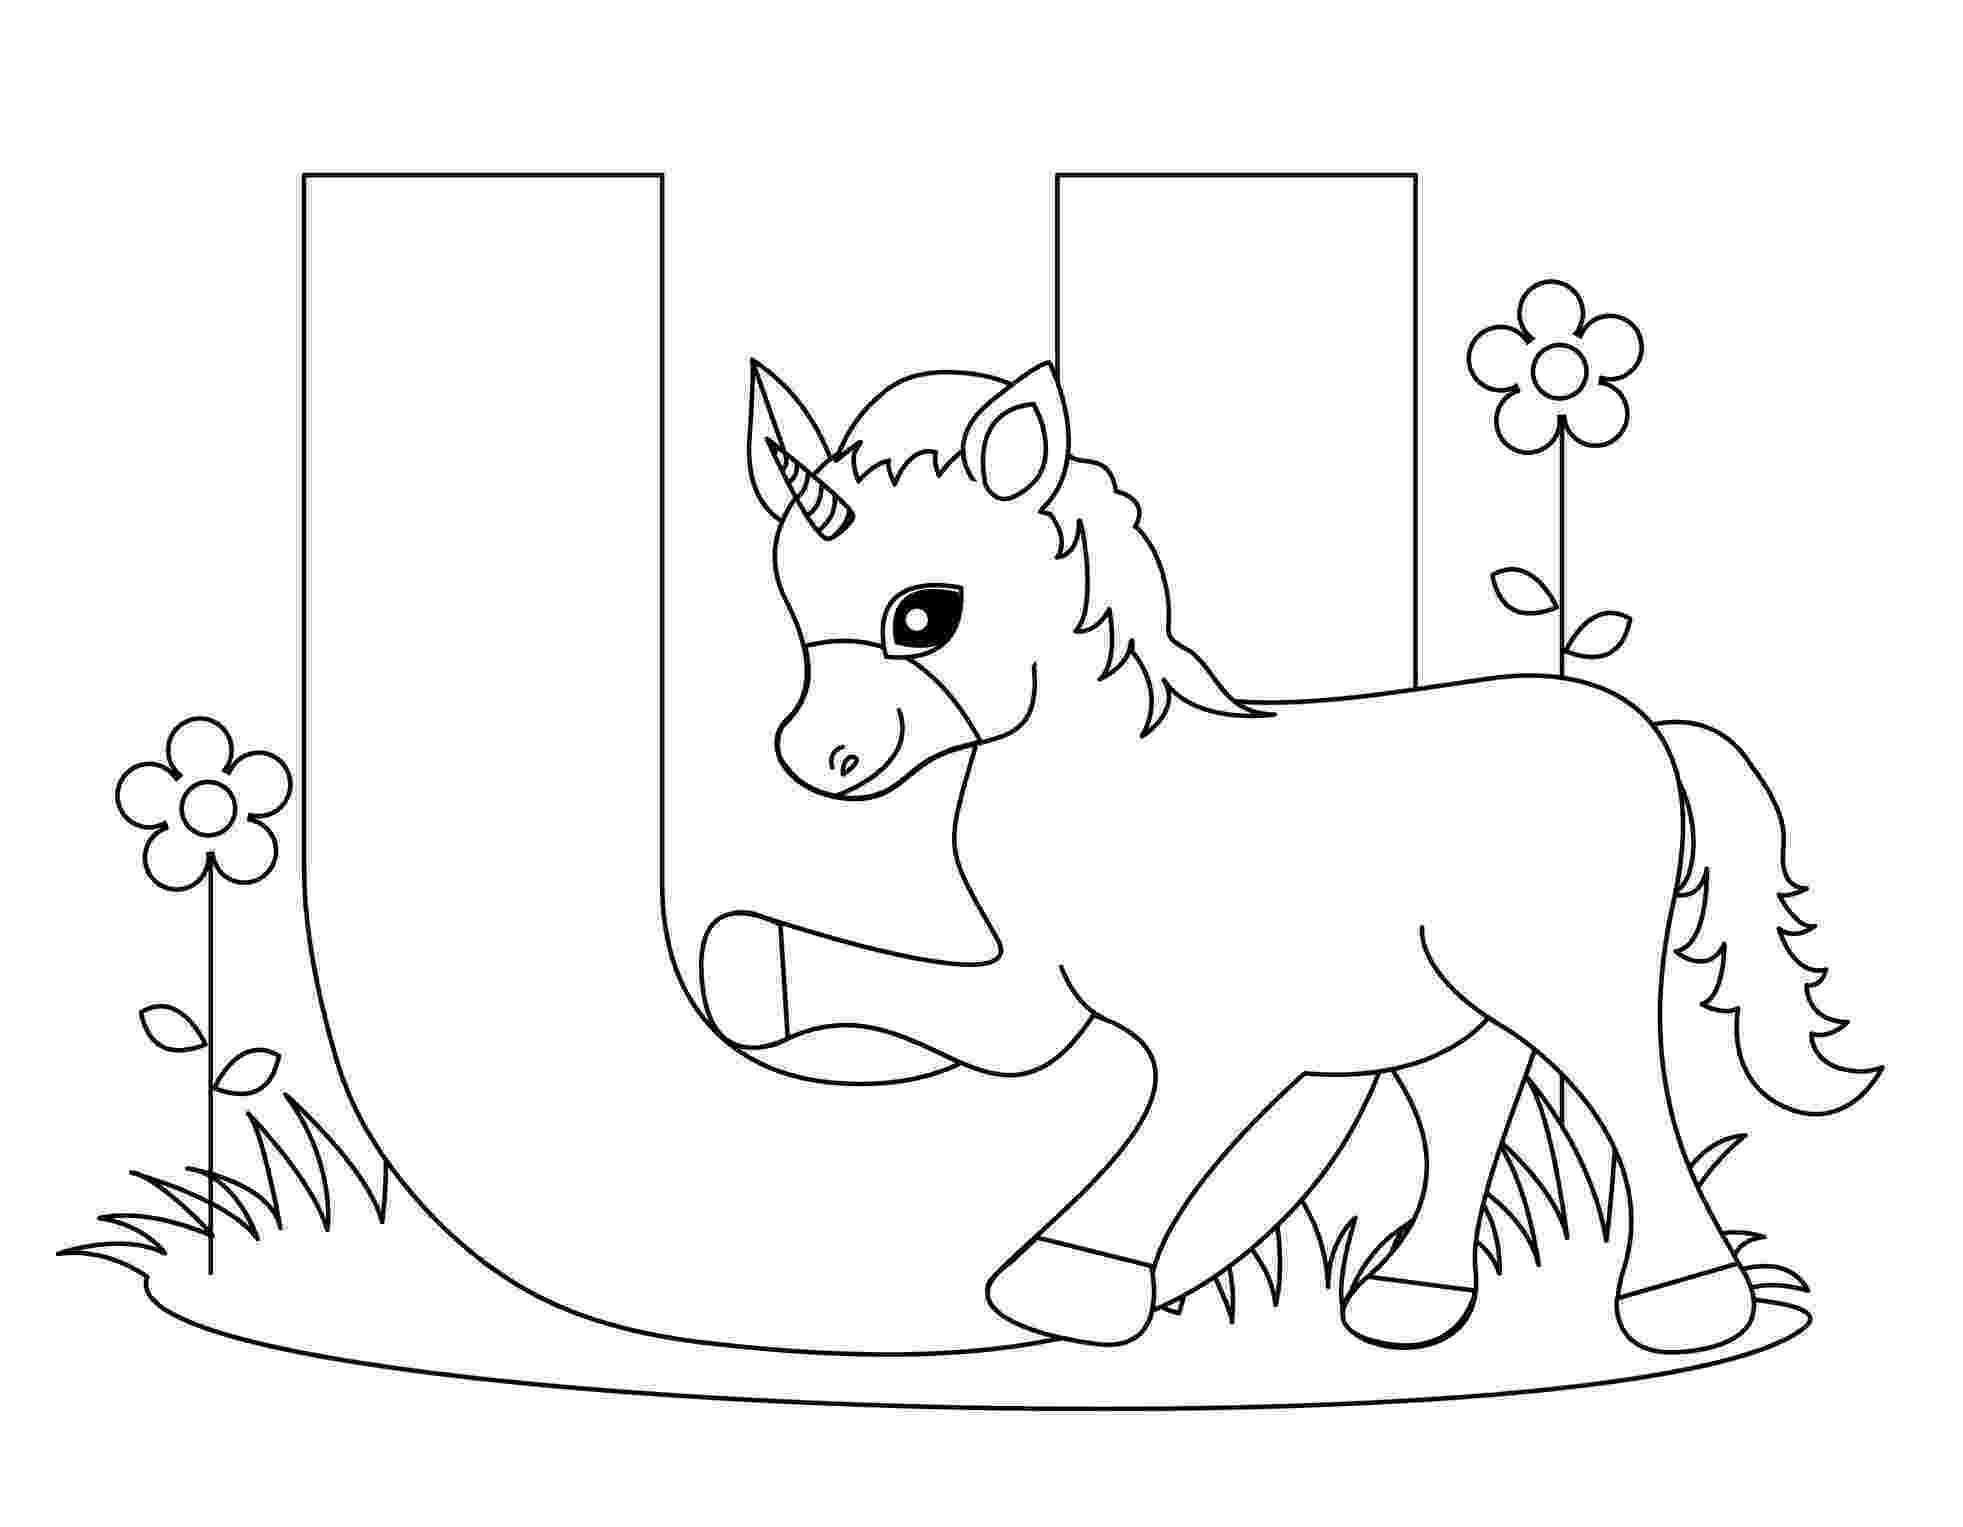 coloring alphabet letters free printable alphabet coloring pages for kids best alphabet coloring letters